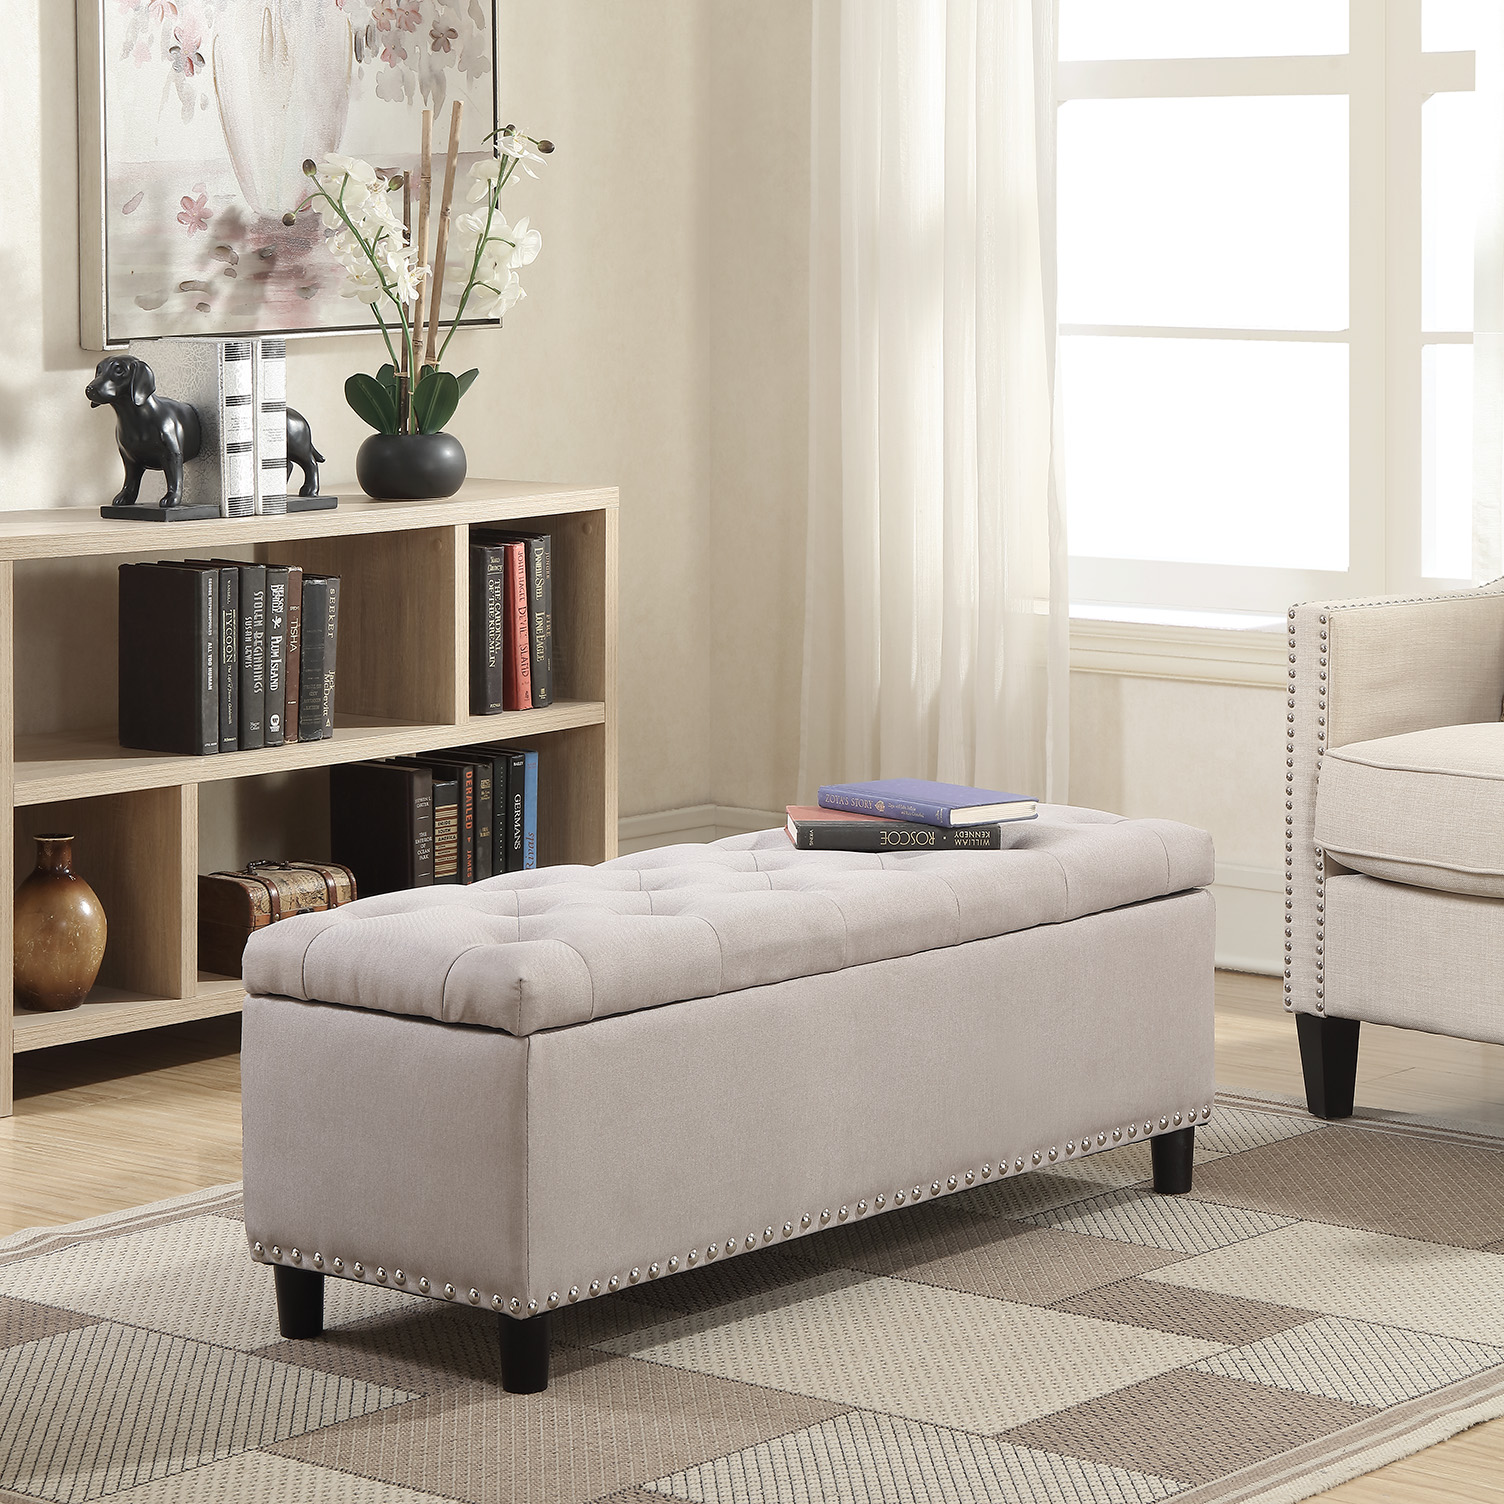 Strange Details About New 48 Rectangular Storage Ottoman Bench Linen Tufted Natural Footrest Lift Top Caraccident5 Cool Chair Designs And Ideas Caraccident5Info